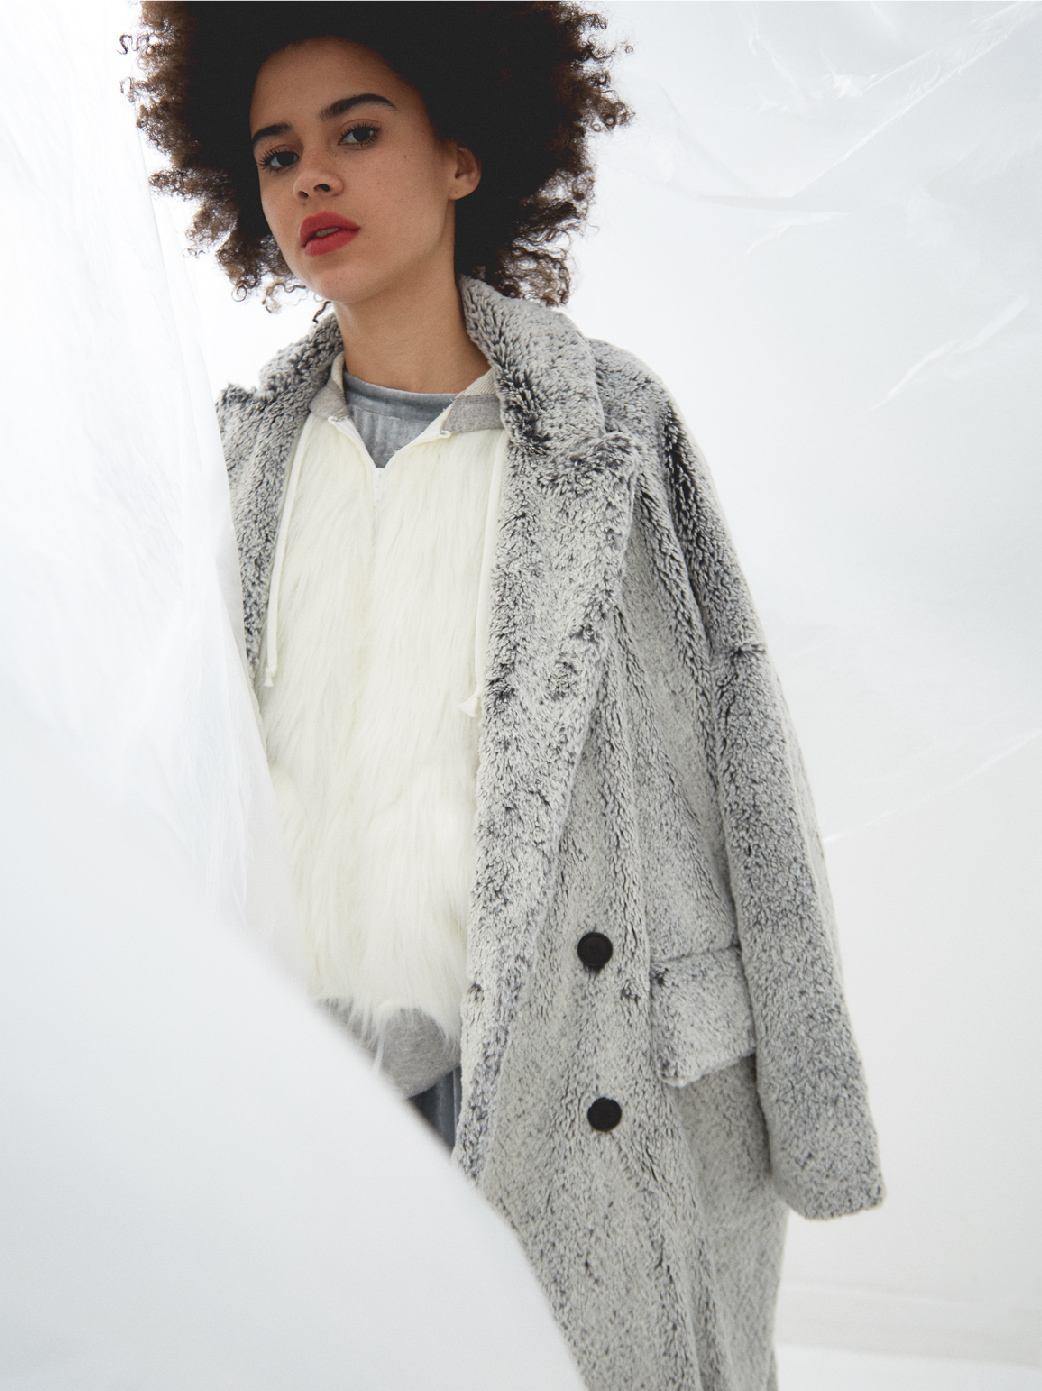 Faux fur and flees provide a soft flowing silhouette